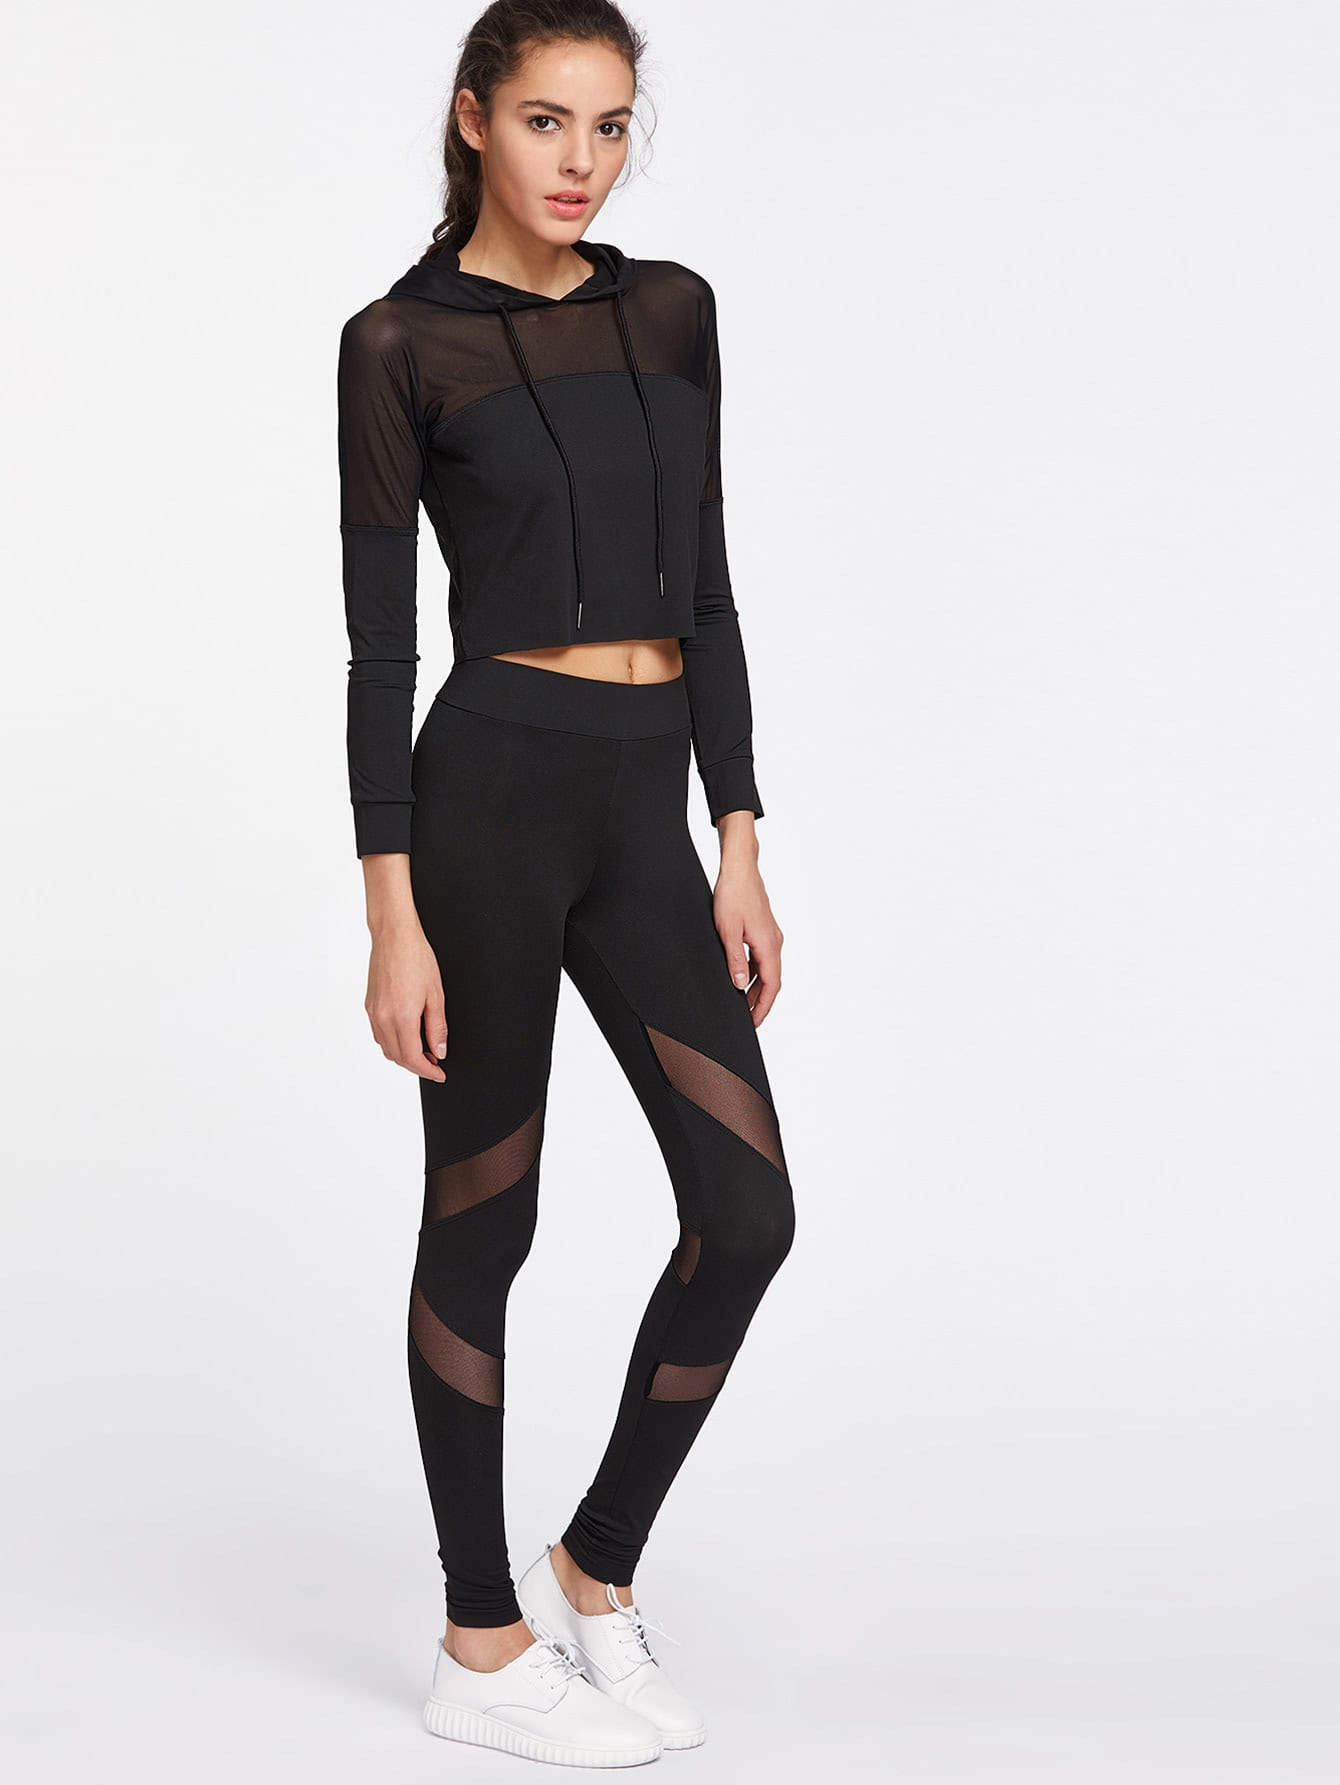 Image of Active Mesh Paneled Hooded Top With Leggings